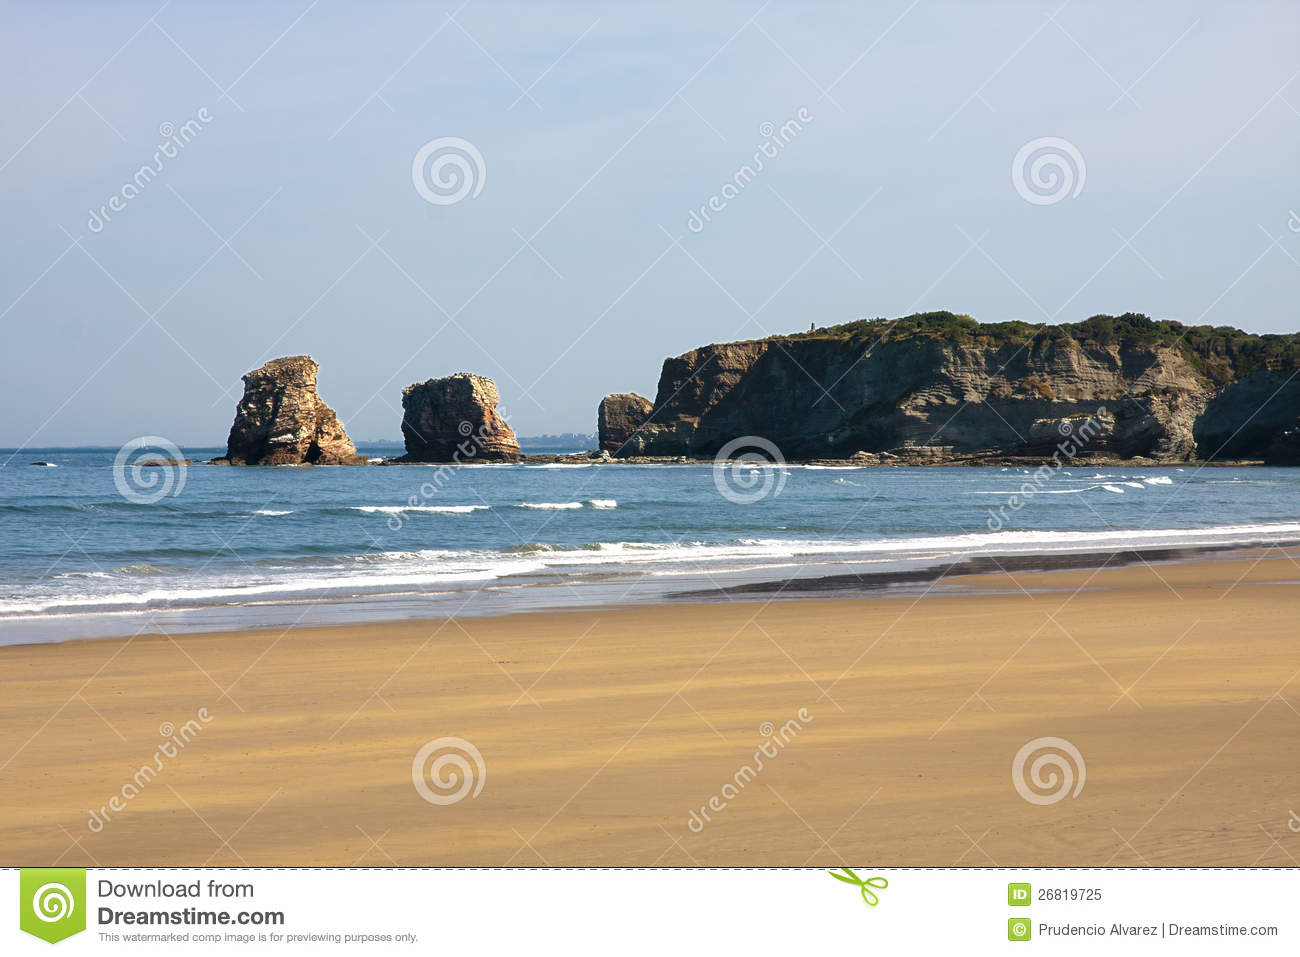 Beach hendaye france royalty free stock photo image for Hendaye france